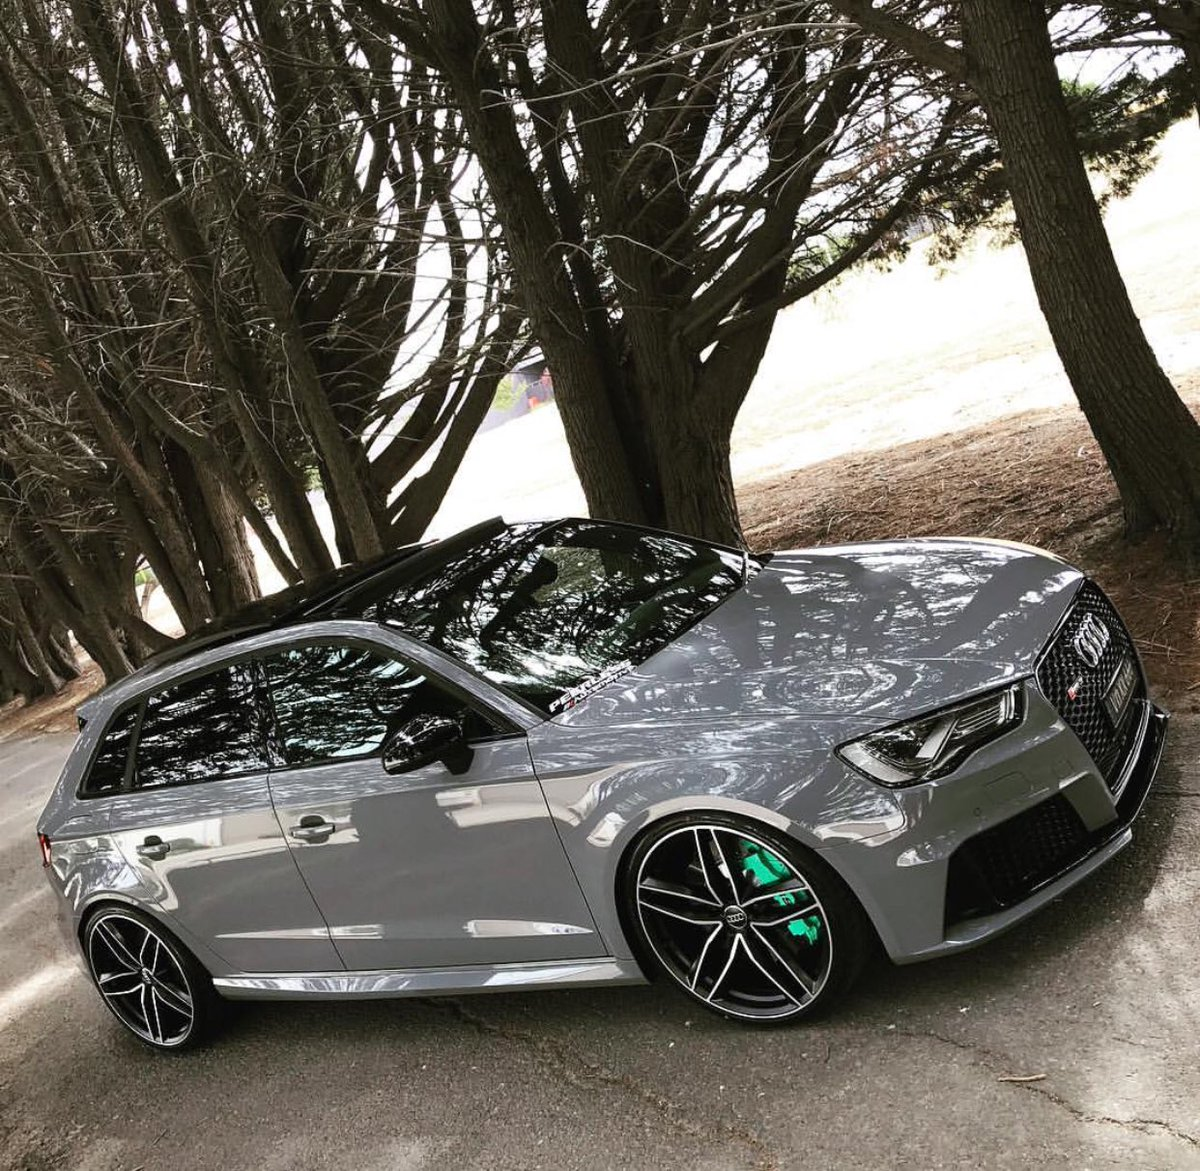 Audirs Hashtag On Twitter - Audi rs3